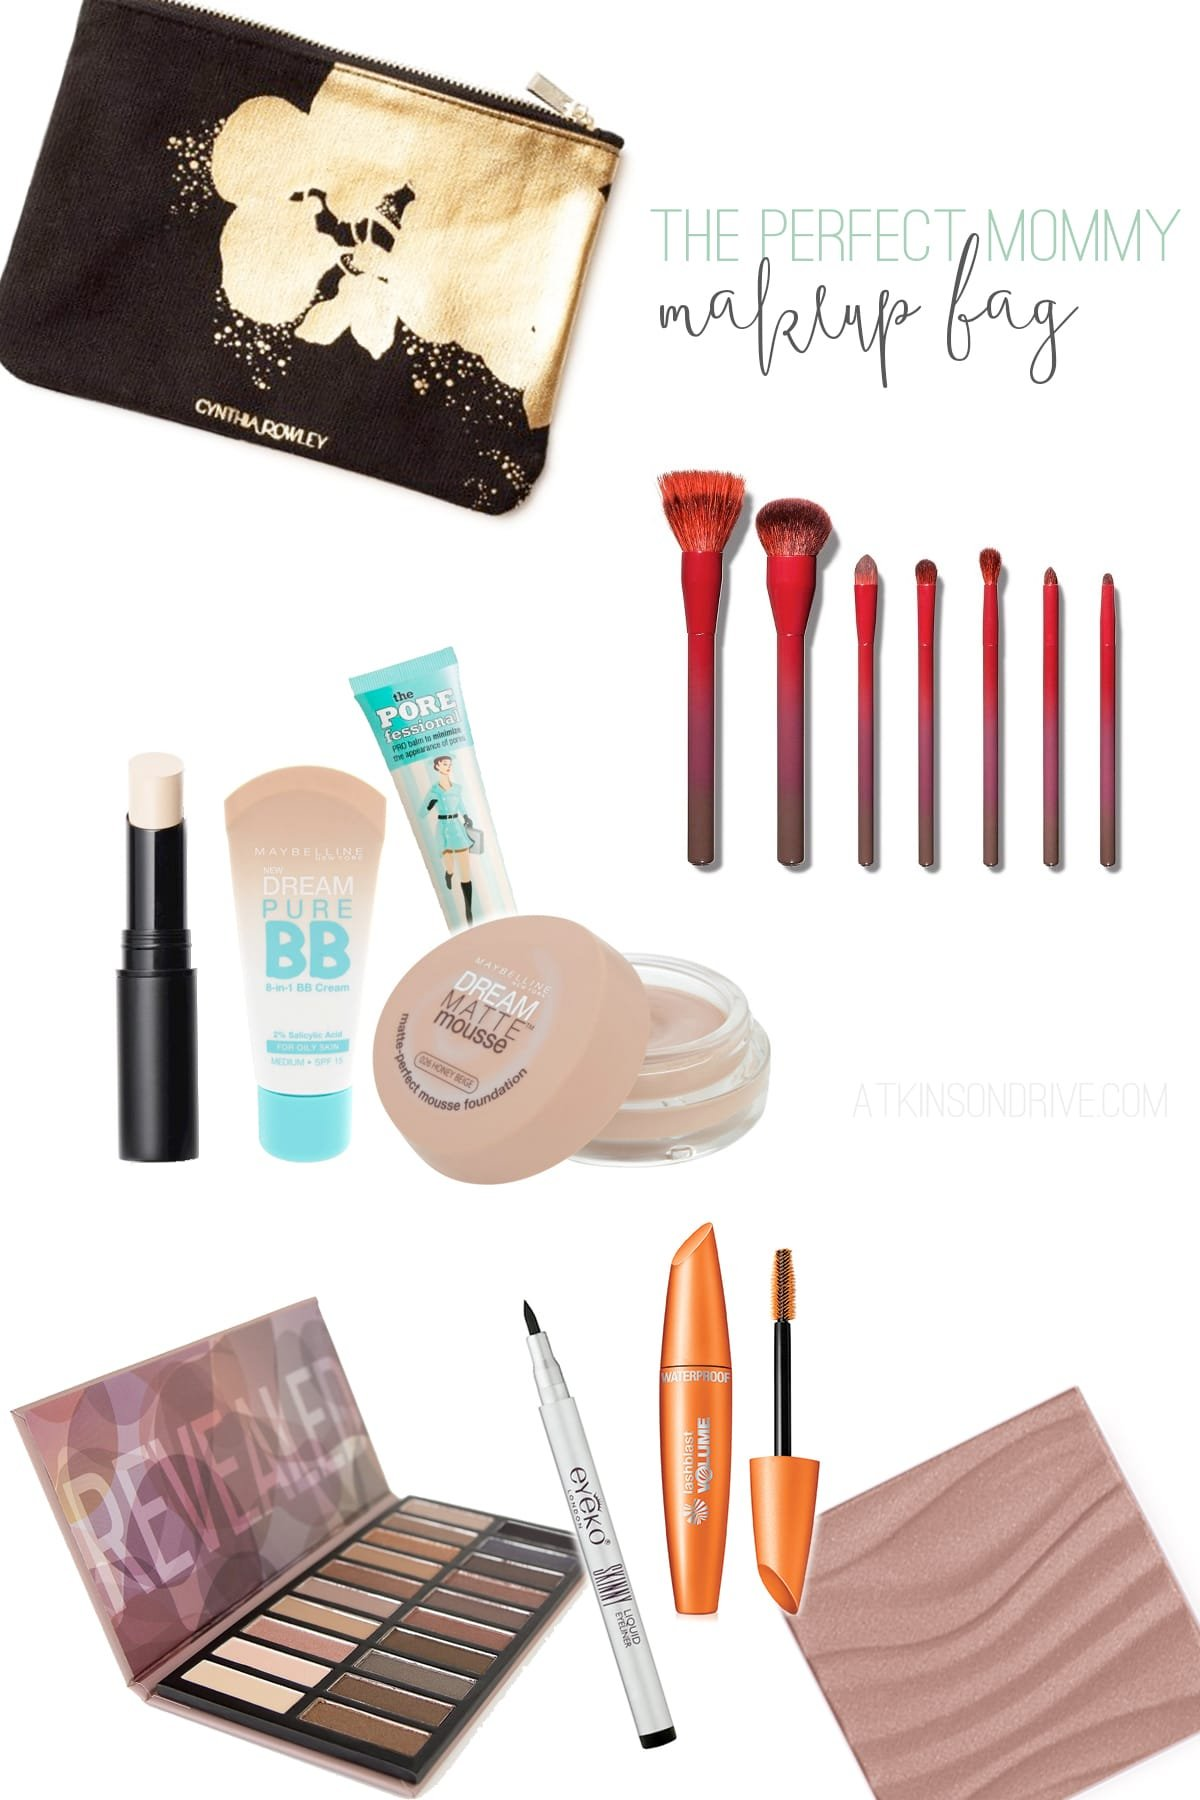 The Perfect Mommy Makeup Bag